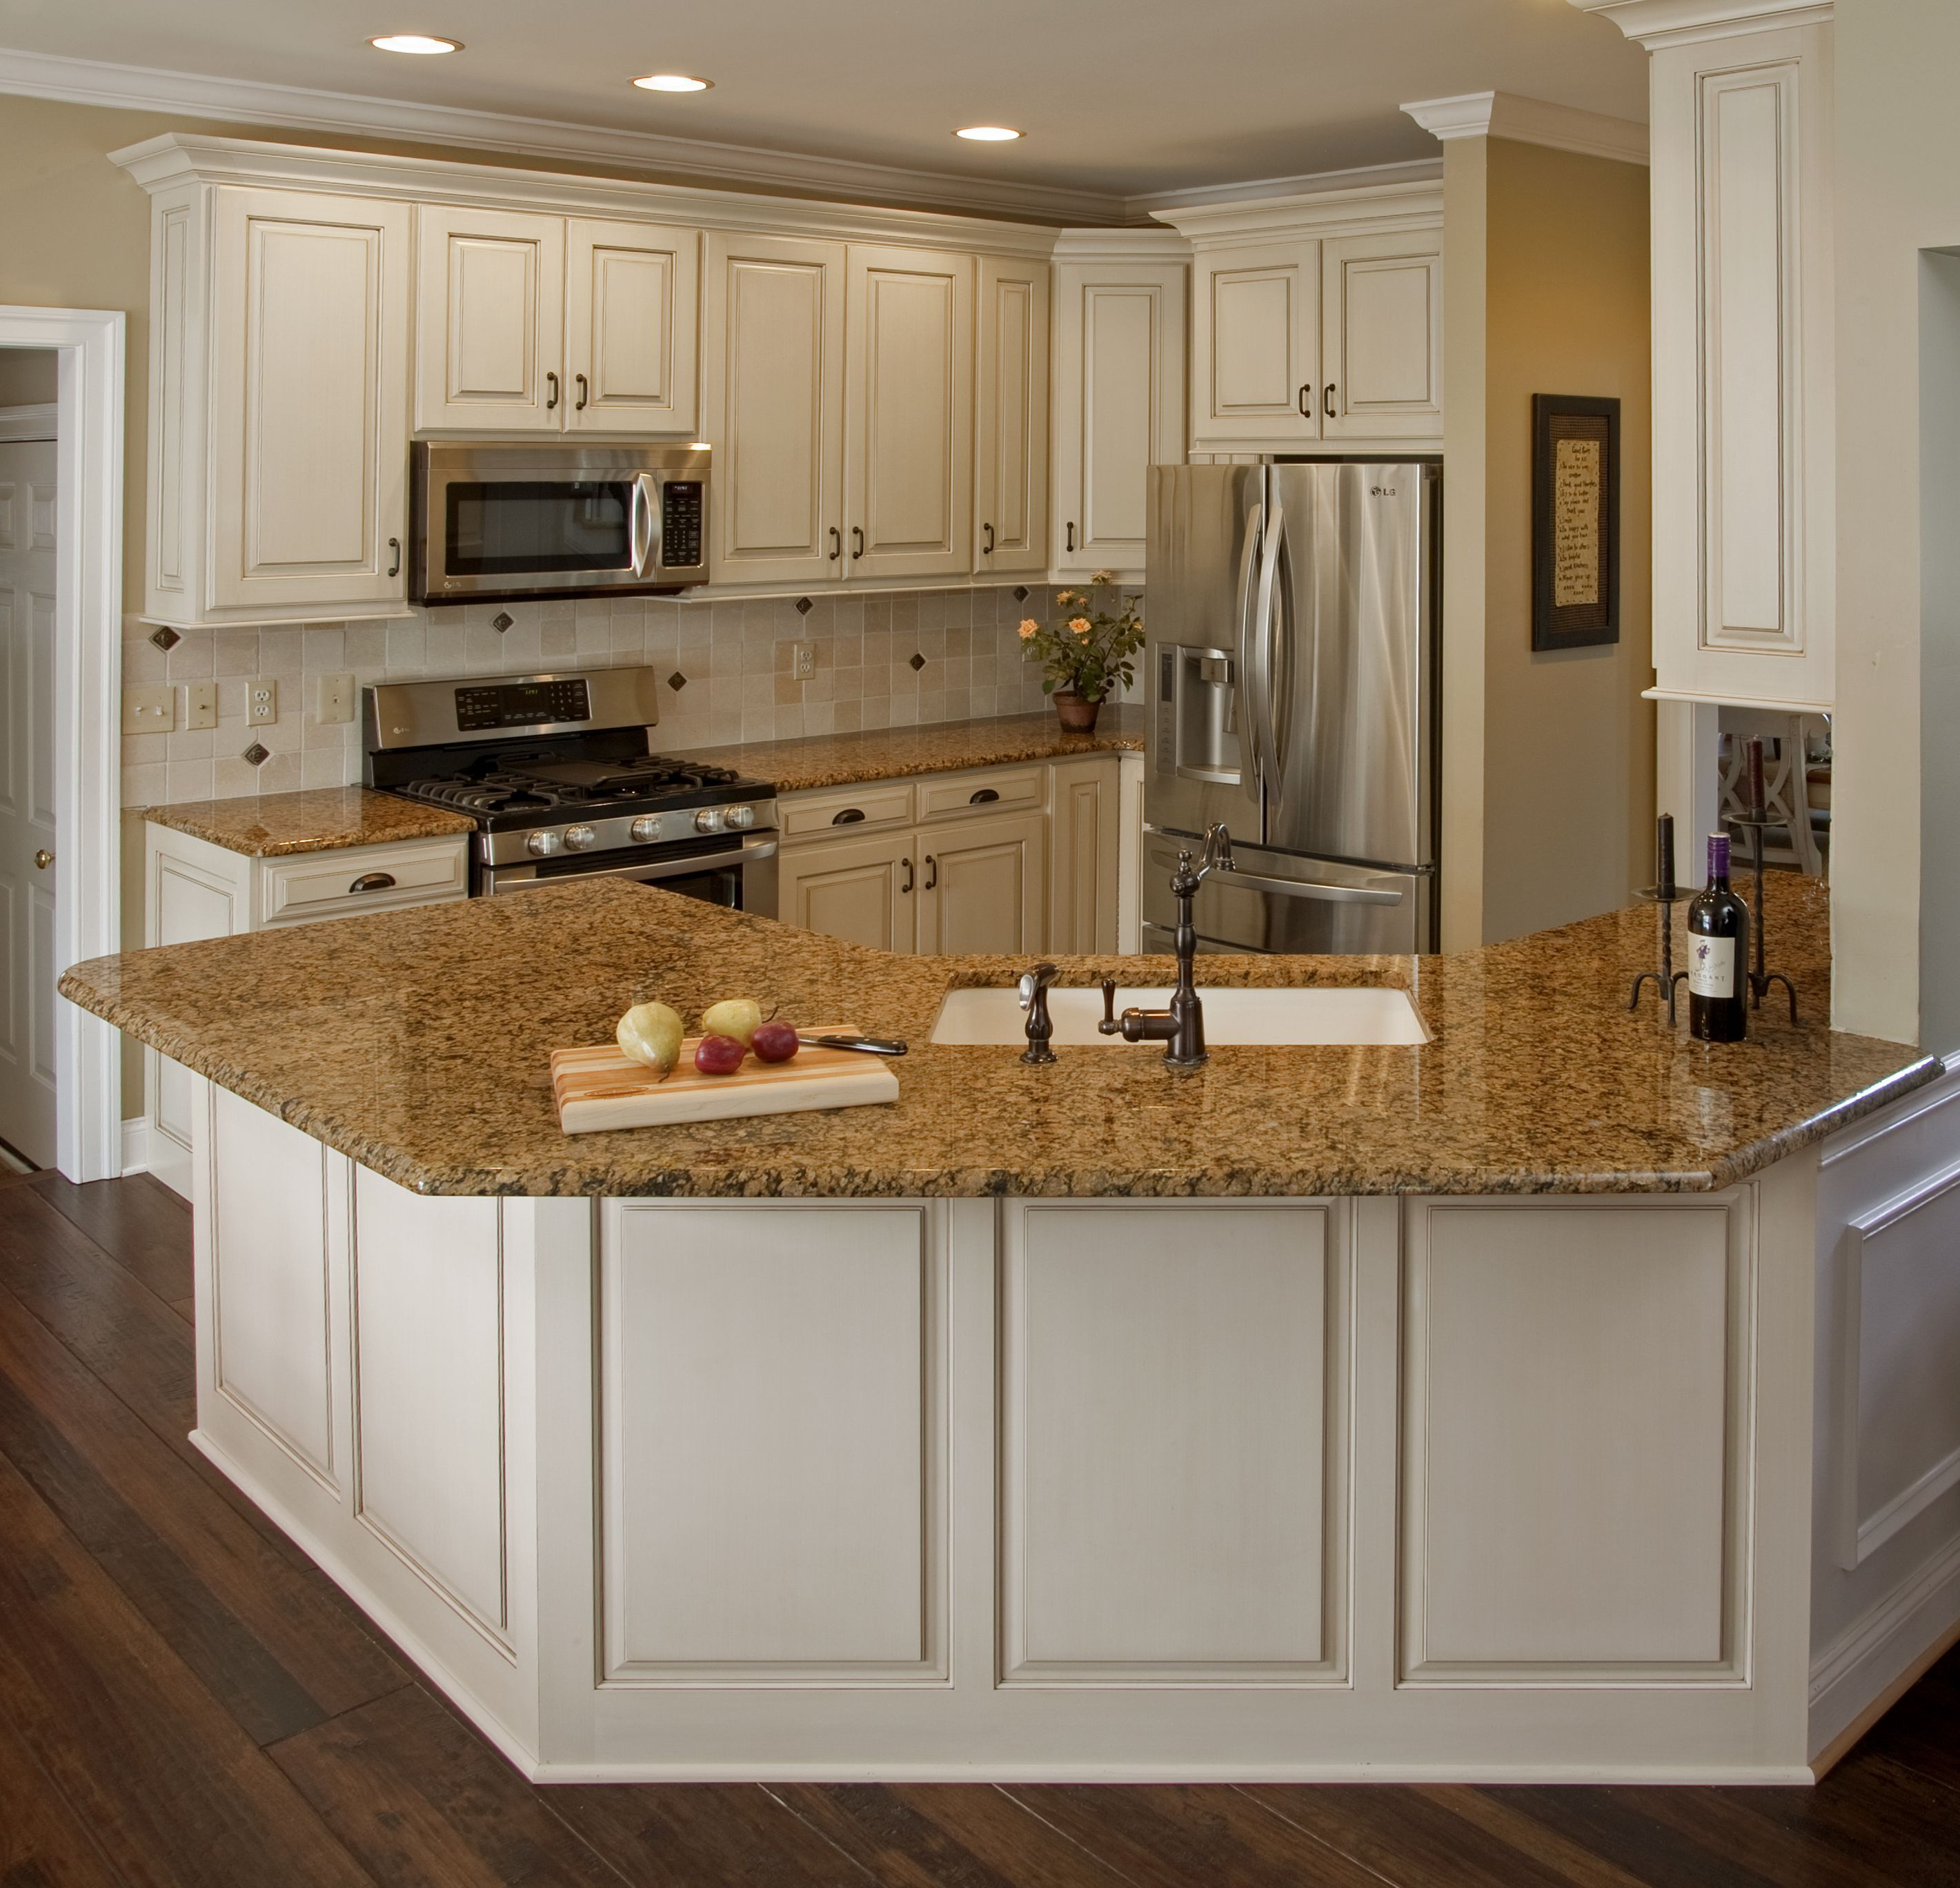 Best Kitchen Gallery: Inspiring Kitchen Decor Using Cabi Refacing Cost On Budget of How Much To Refinish Kitchen Cabinets on cal-ite.com